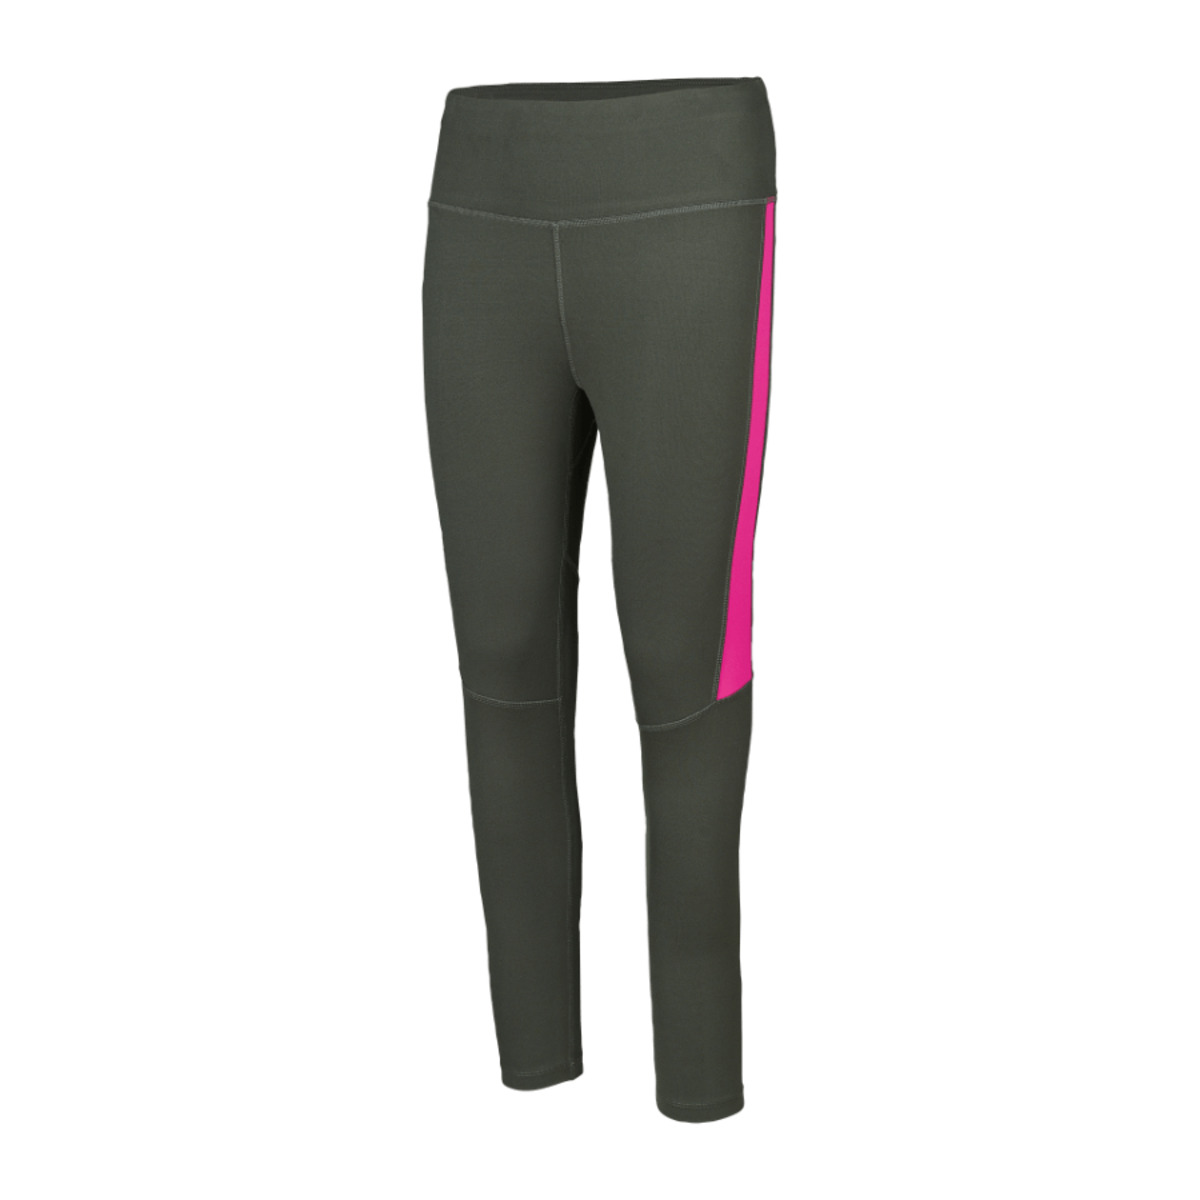 Bild 3 von ACTIVE TOUCH  	   Sport-Leggings